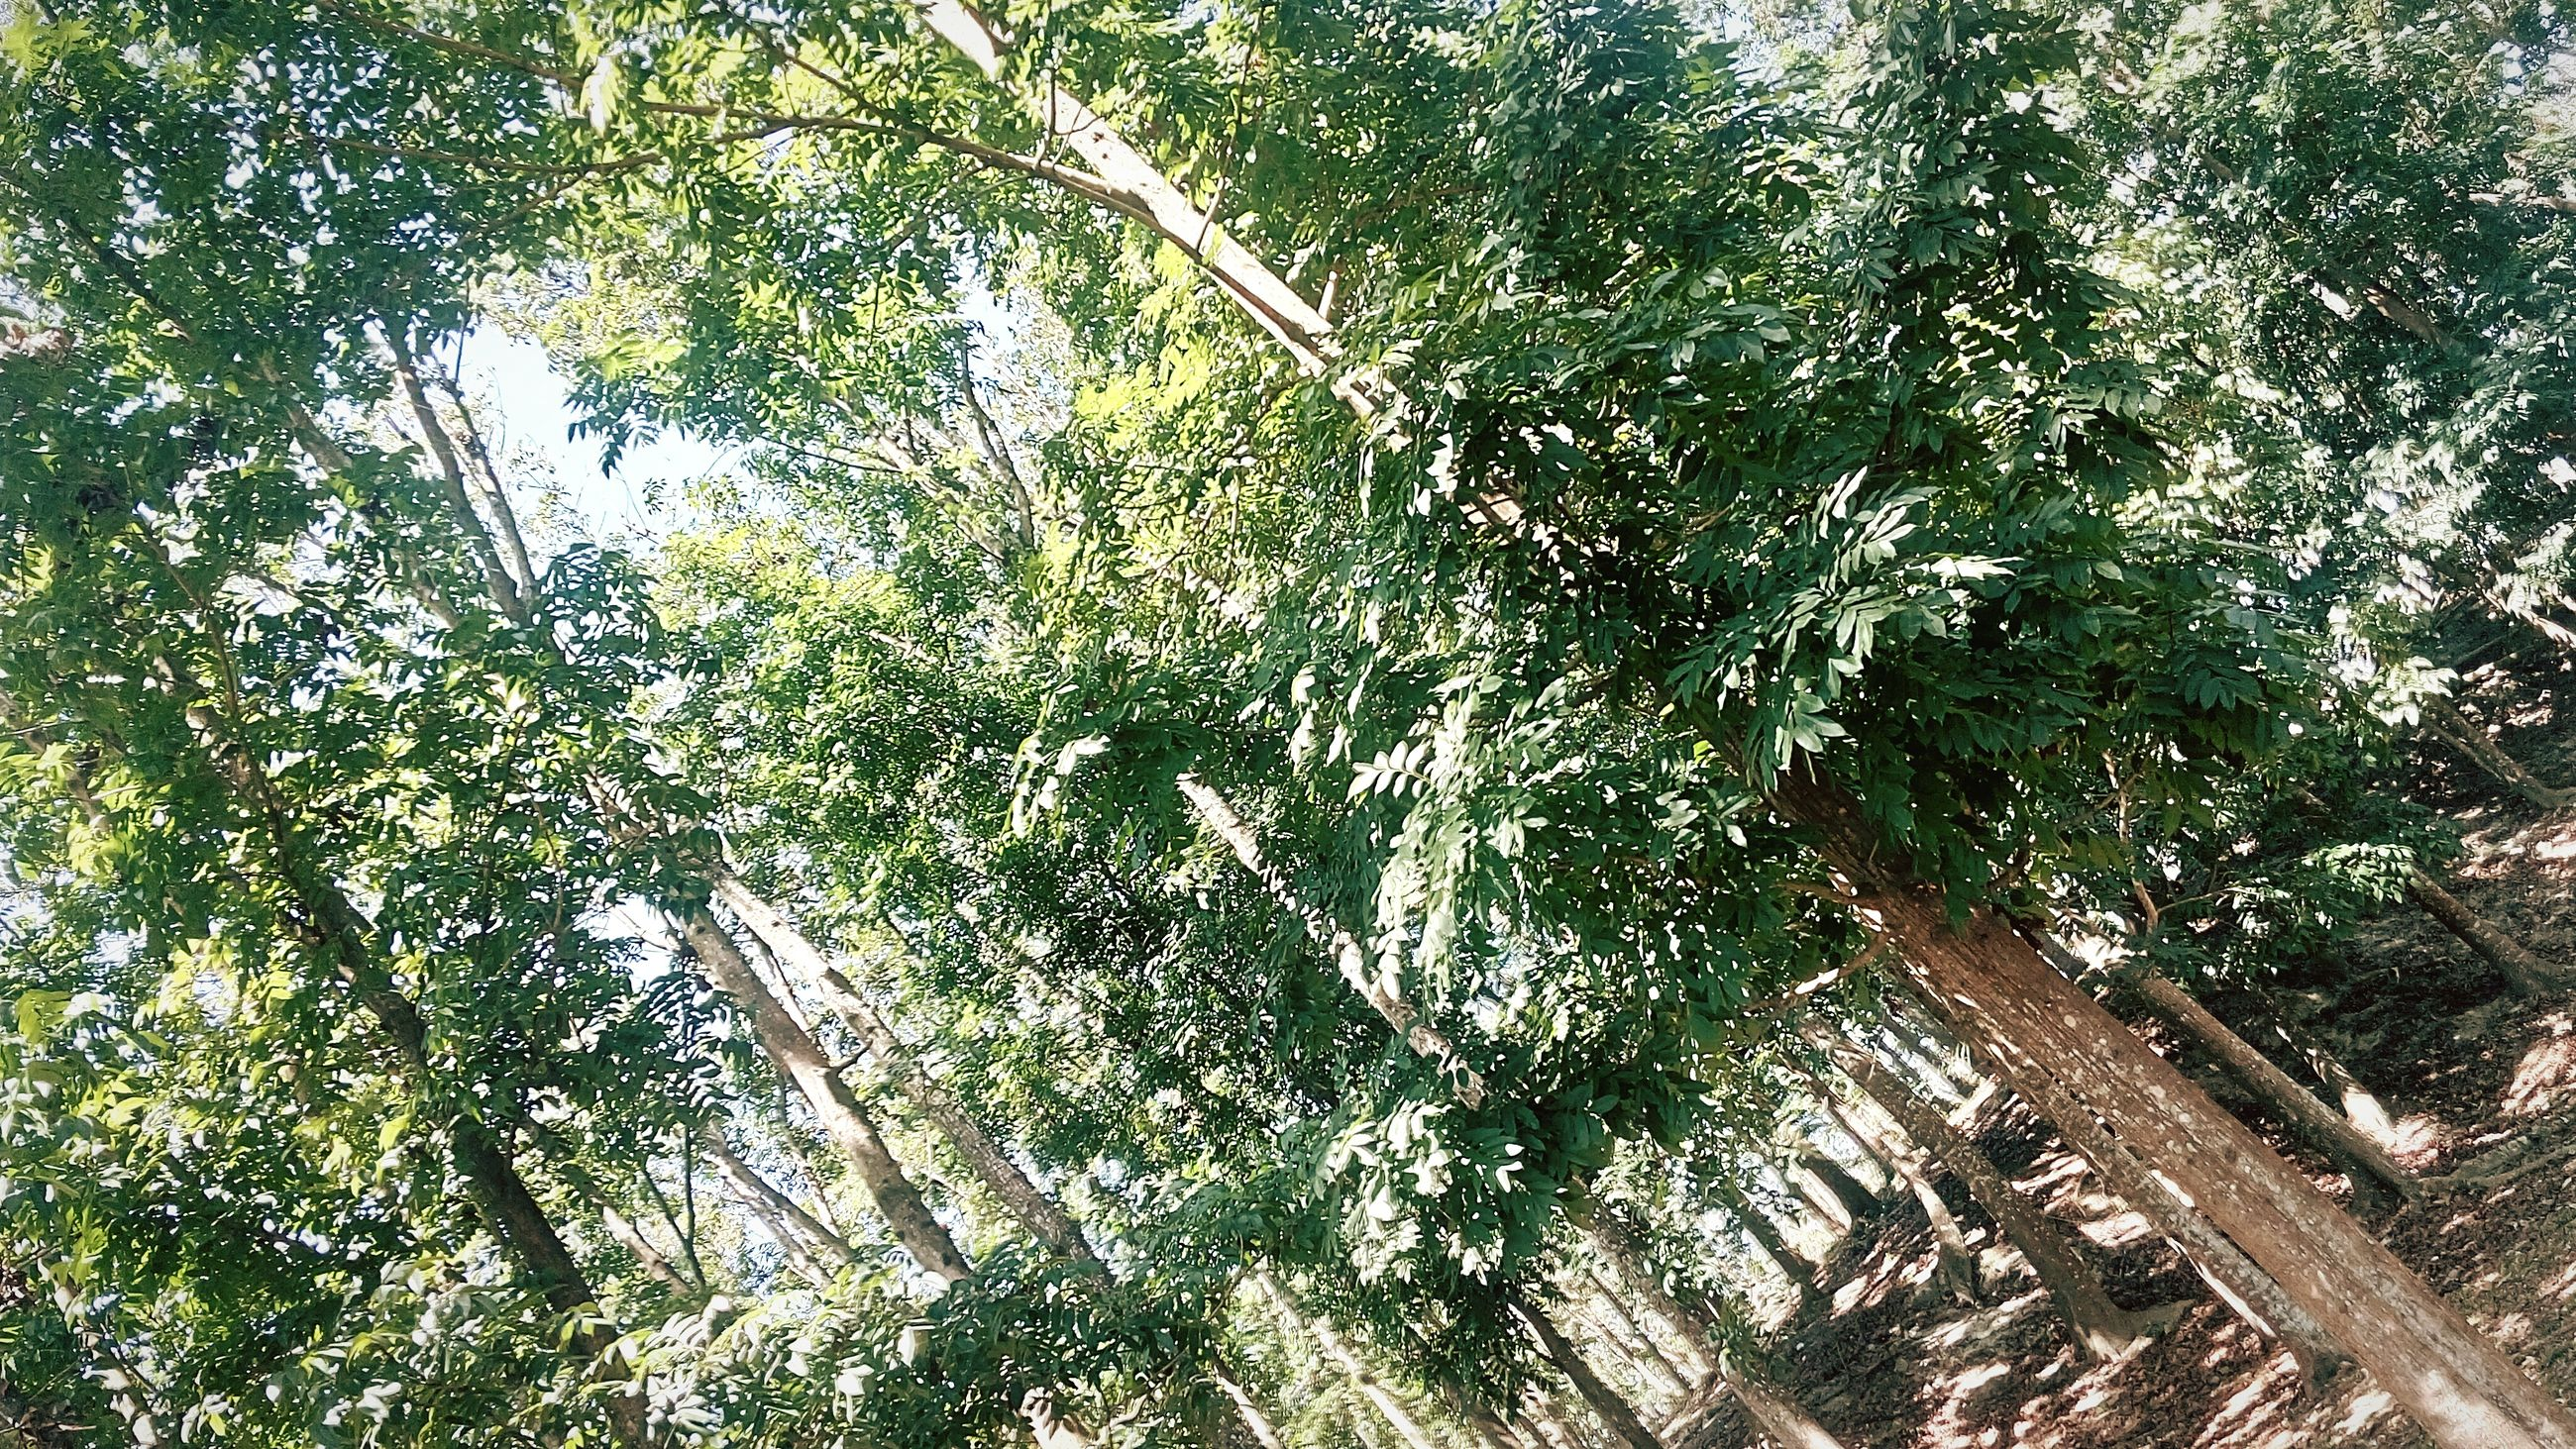 tree, growth, branch, tranquility, nature, low angle view, sunlight, beauty in nature, forest, green color, tree trunk, day, tranquil scene, outdoors, scenics, no people, plant, leaf, idyllic, sky